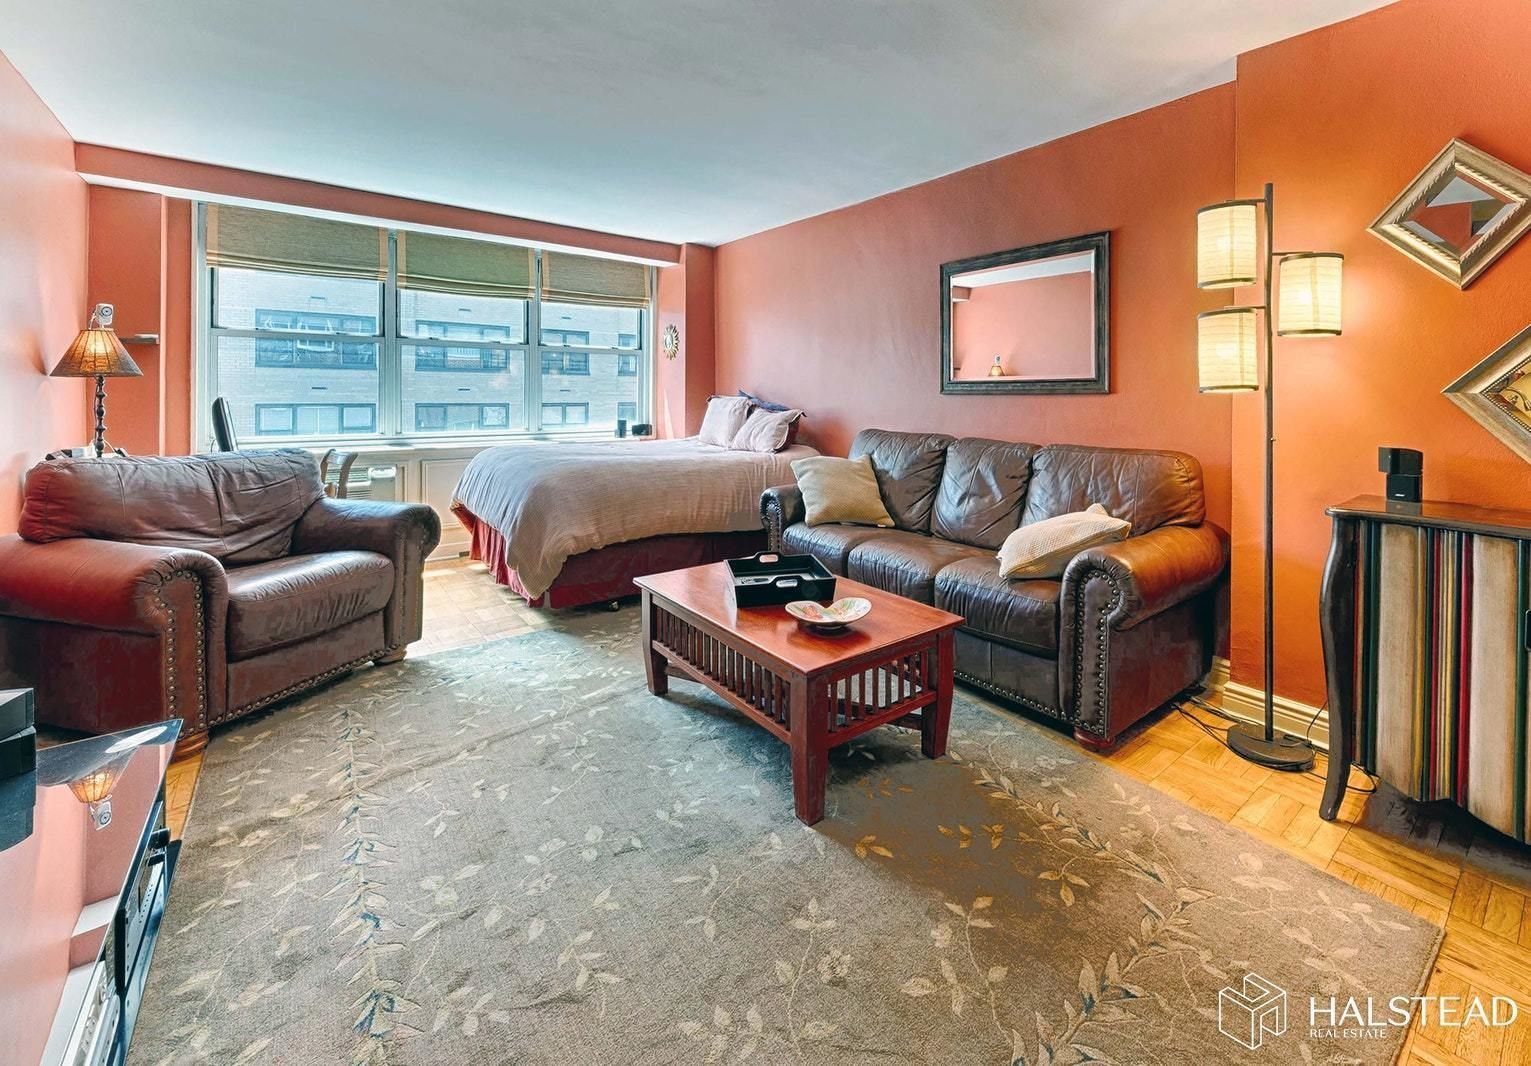 Apartment for sale at 310 East 70th Street, Apt 10C